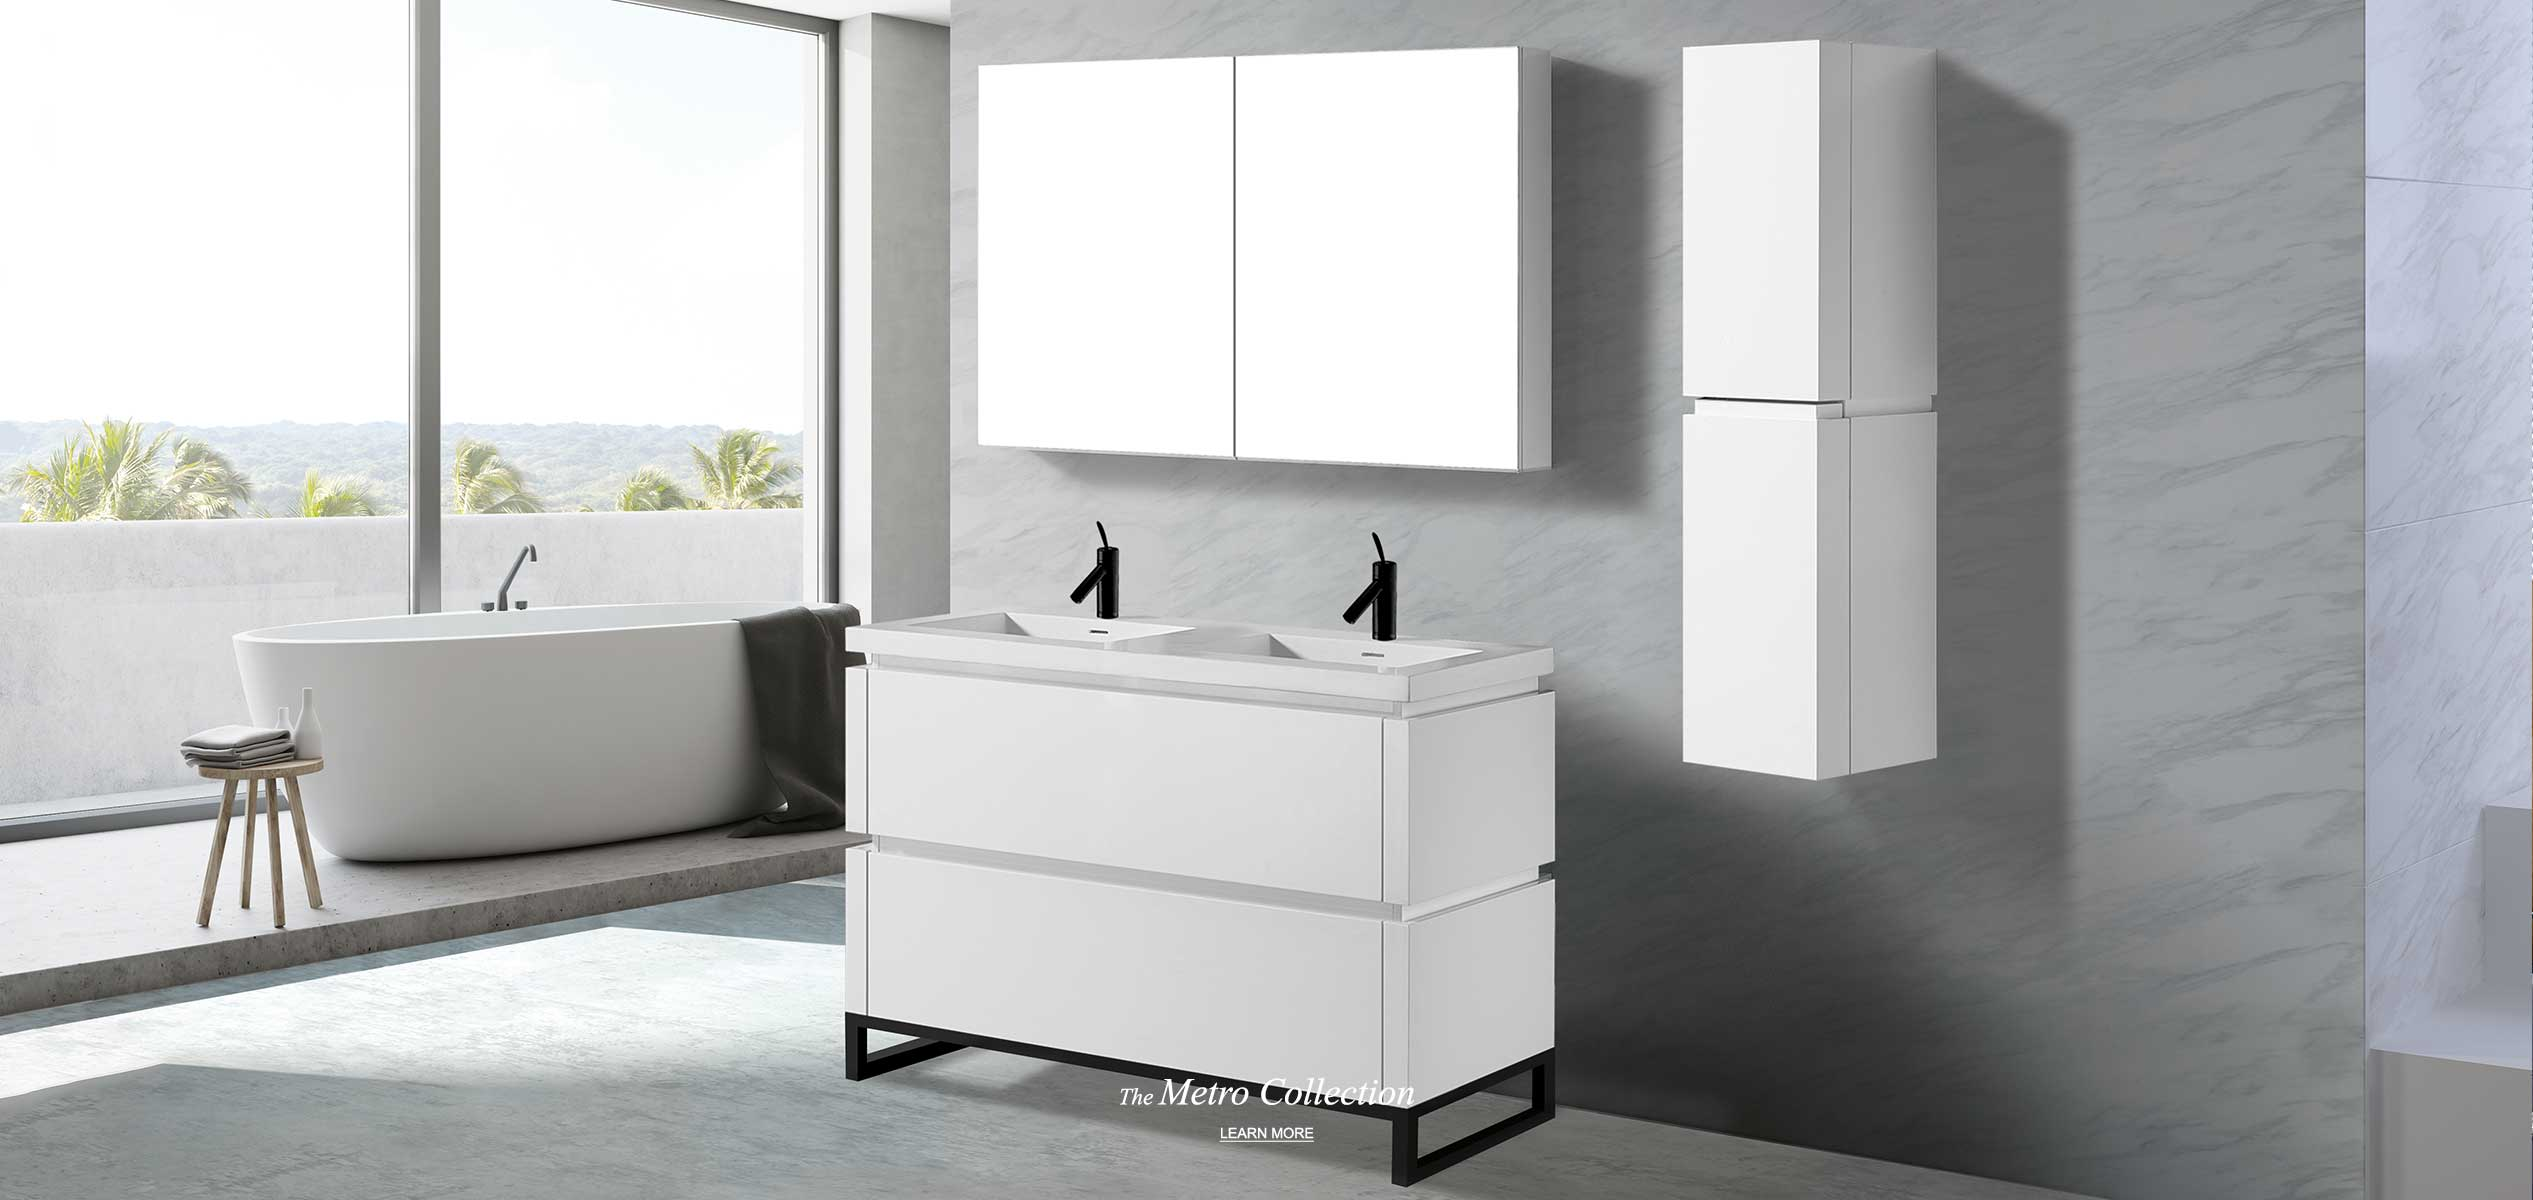 Metro 48 inch double bowl vanity and linen cabinet in white with matching medicine cabinet